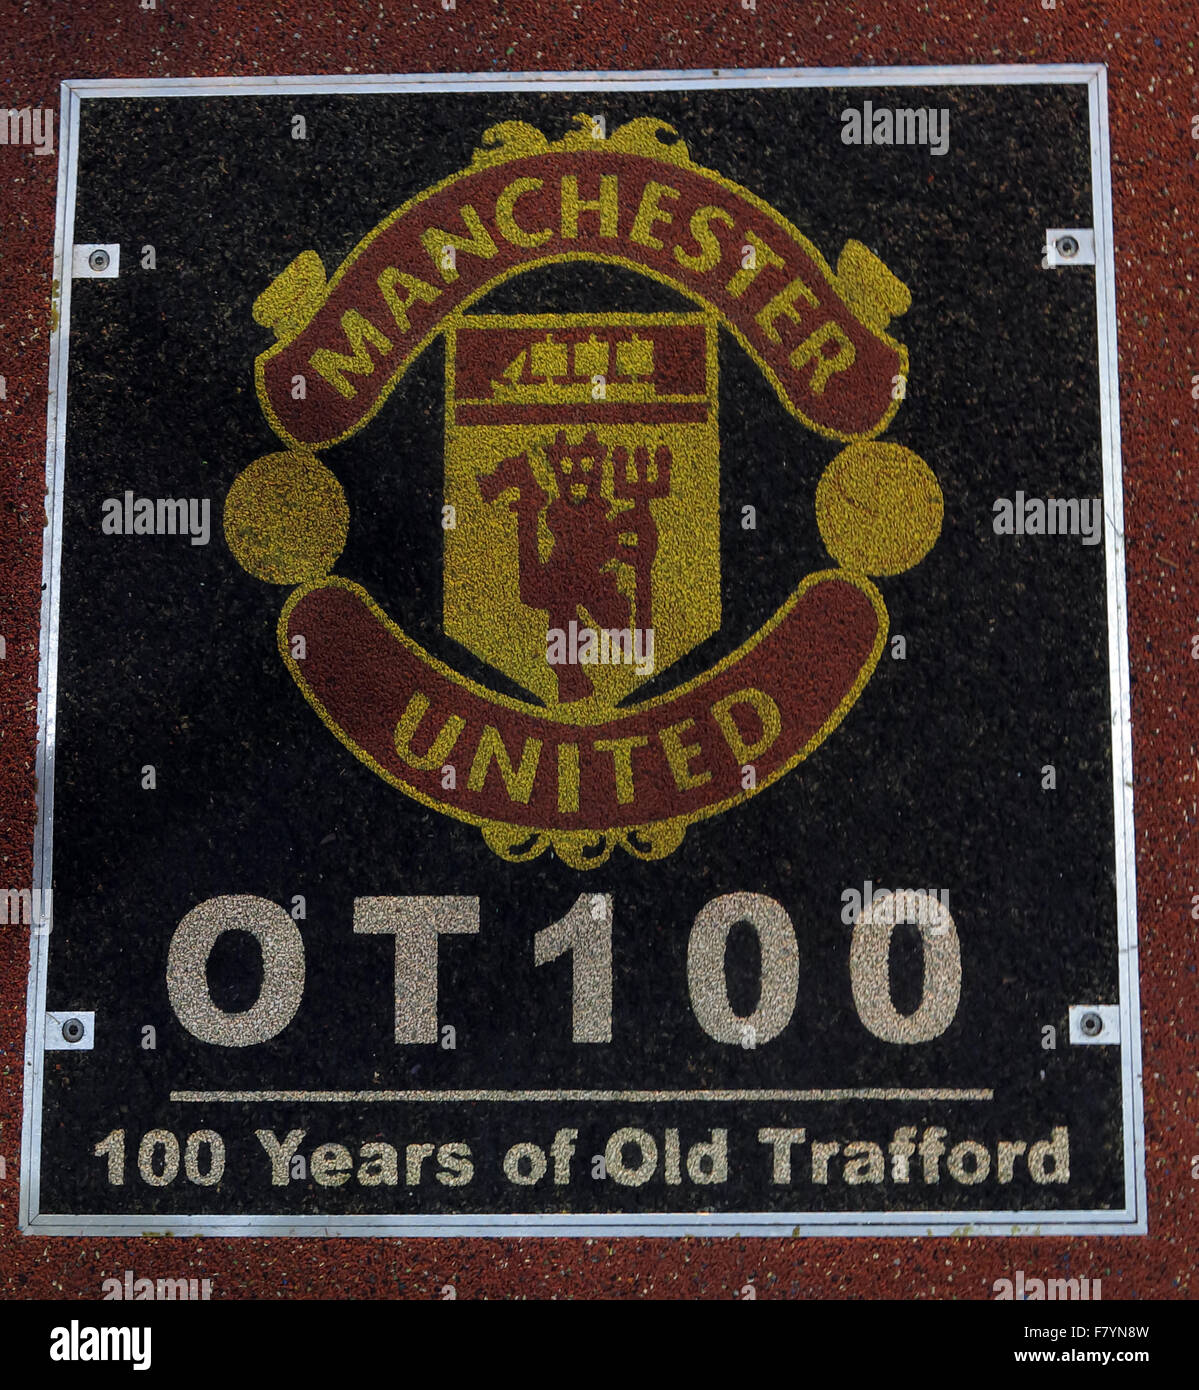 Site of the Old Trafford 100 years time capsule OT100, Manchester United Stadium,England,UK - Stock Image